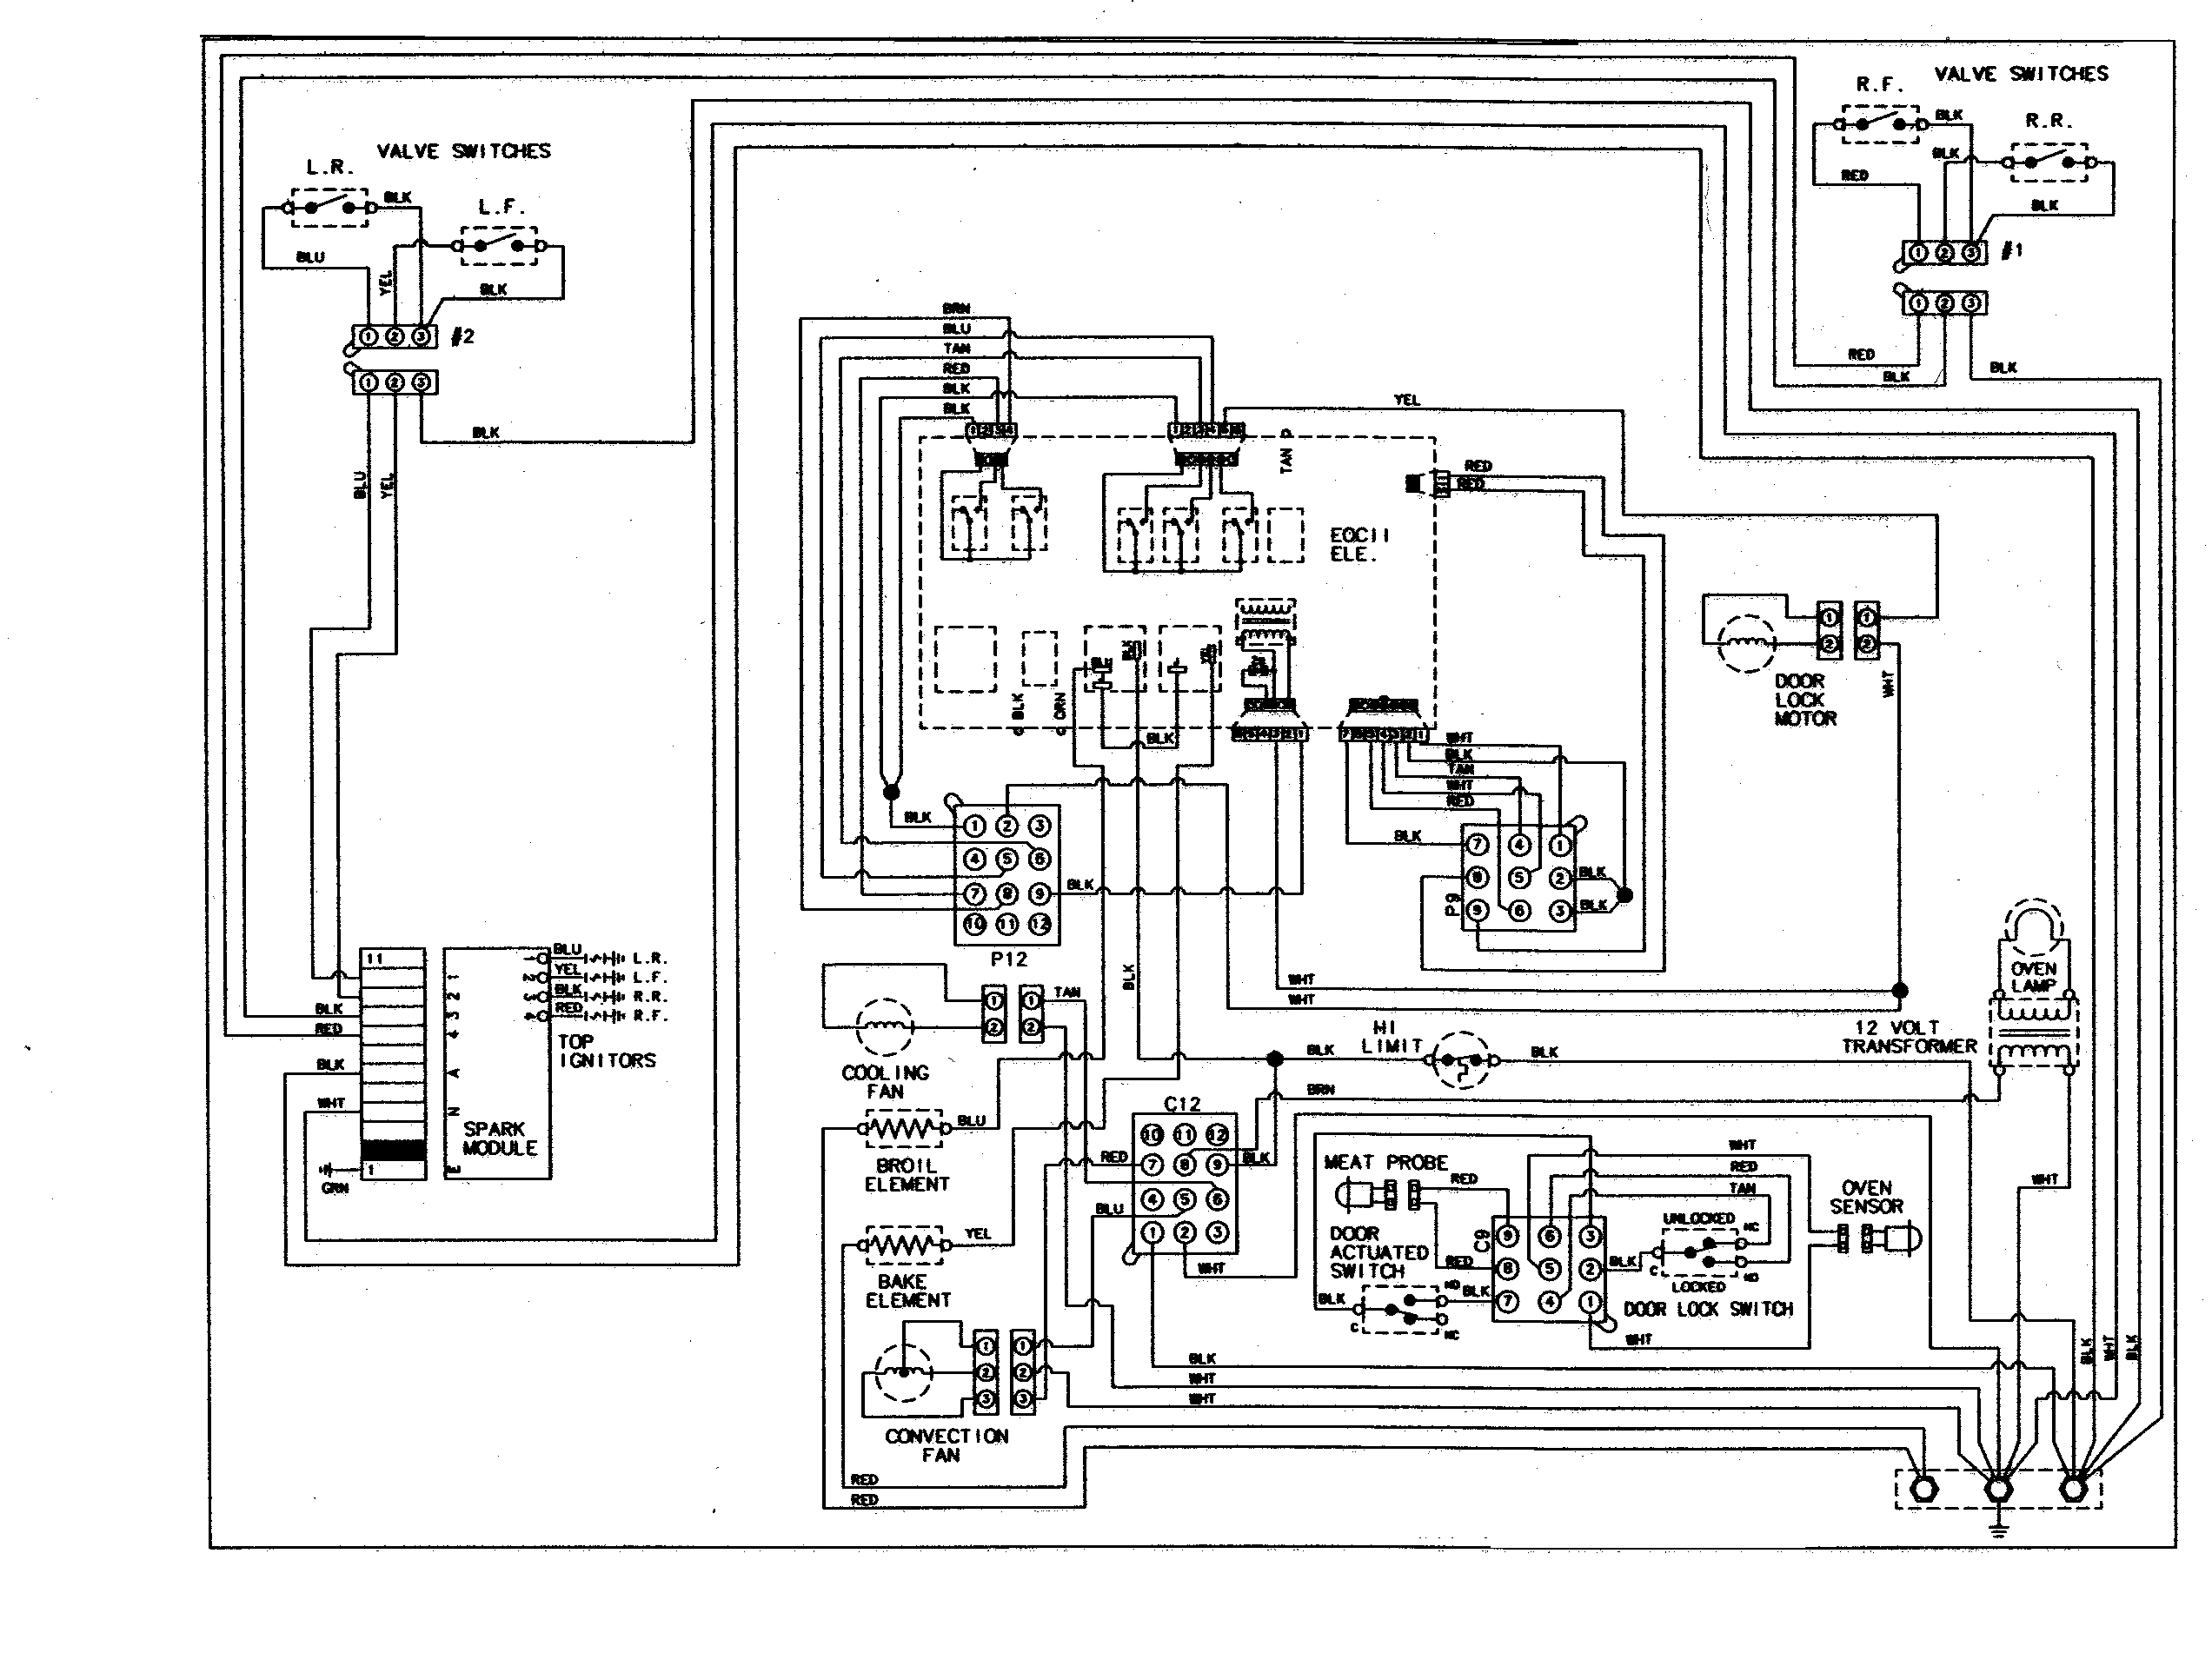 Ge Wiring Schematic Jvm 2 | Wiring Schematic Diagram - 102 ... on ge wiring schematic, ge electric dryer, ge dryer wiring color, ge schematic diagrams, ge dryer replacement parts, ge dryer rotary start switch, ge dryer thermal fuse location, ge range electrical diagram, ge appliance parts diagram, ge dryer problems, kenmore dryer door switch diagram, general electric dryer diagram, ge clothes dryer parts, dryer schematic diagram, ge dryer not heating, ge dishwasher diagram, ge dryer plug wiring, ge appliance wiring diagrams, ge dryer switch wiring, maytag neptune dryer belt routing diagram,